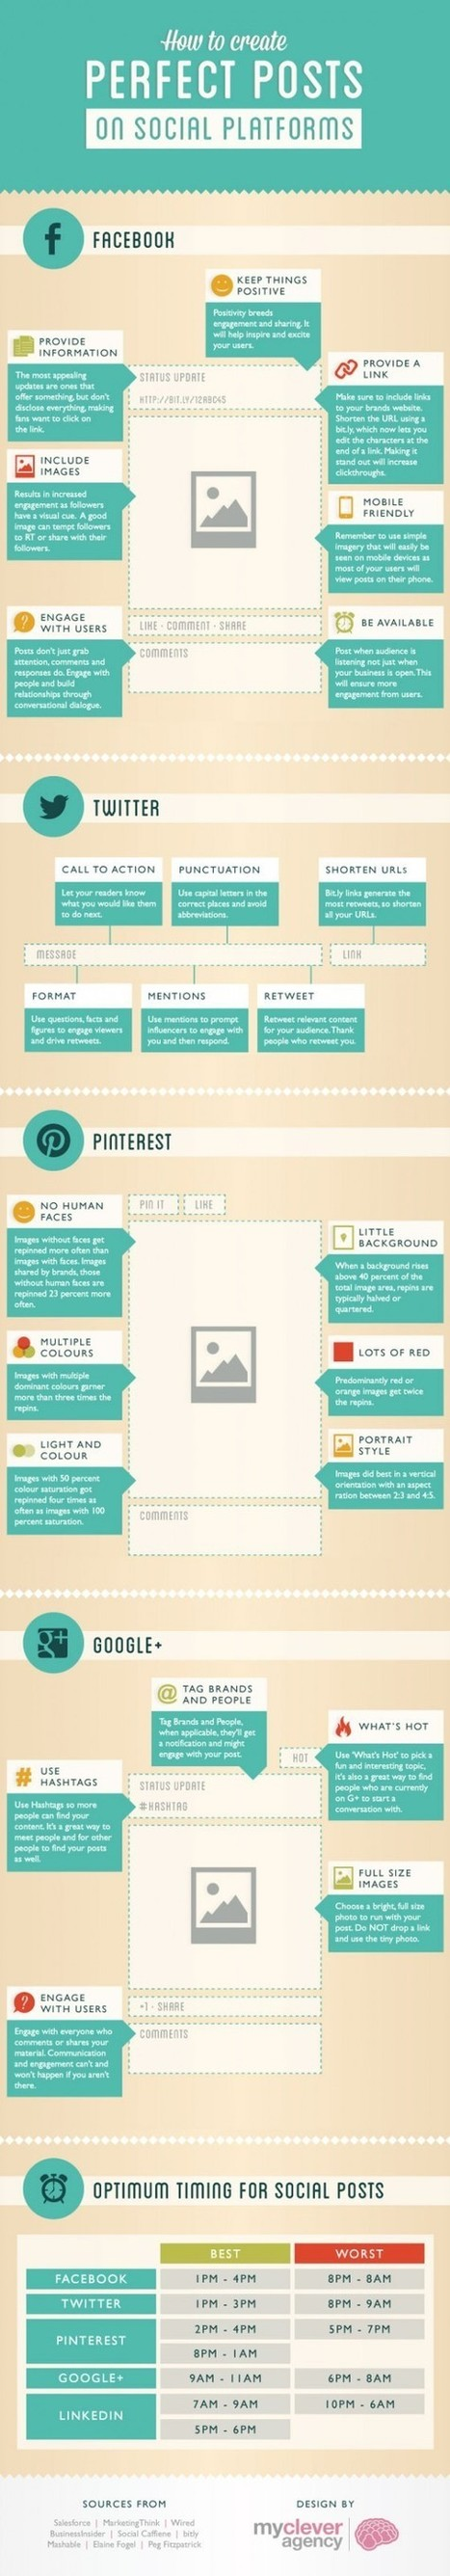 Comment Publier Efficacement sur Facebook, Twitter, Pinterest et Google+ ? | Image Digitale | Scoop.it